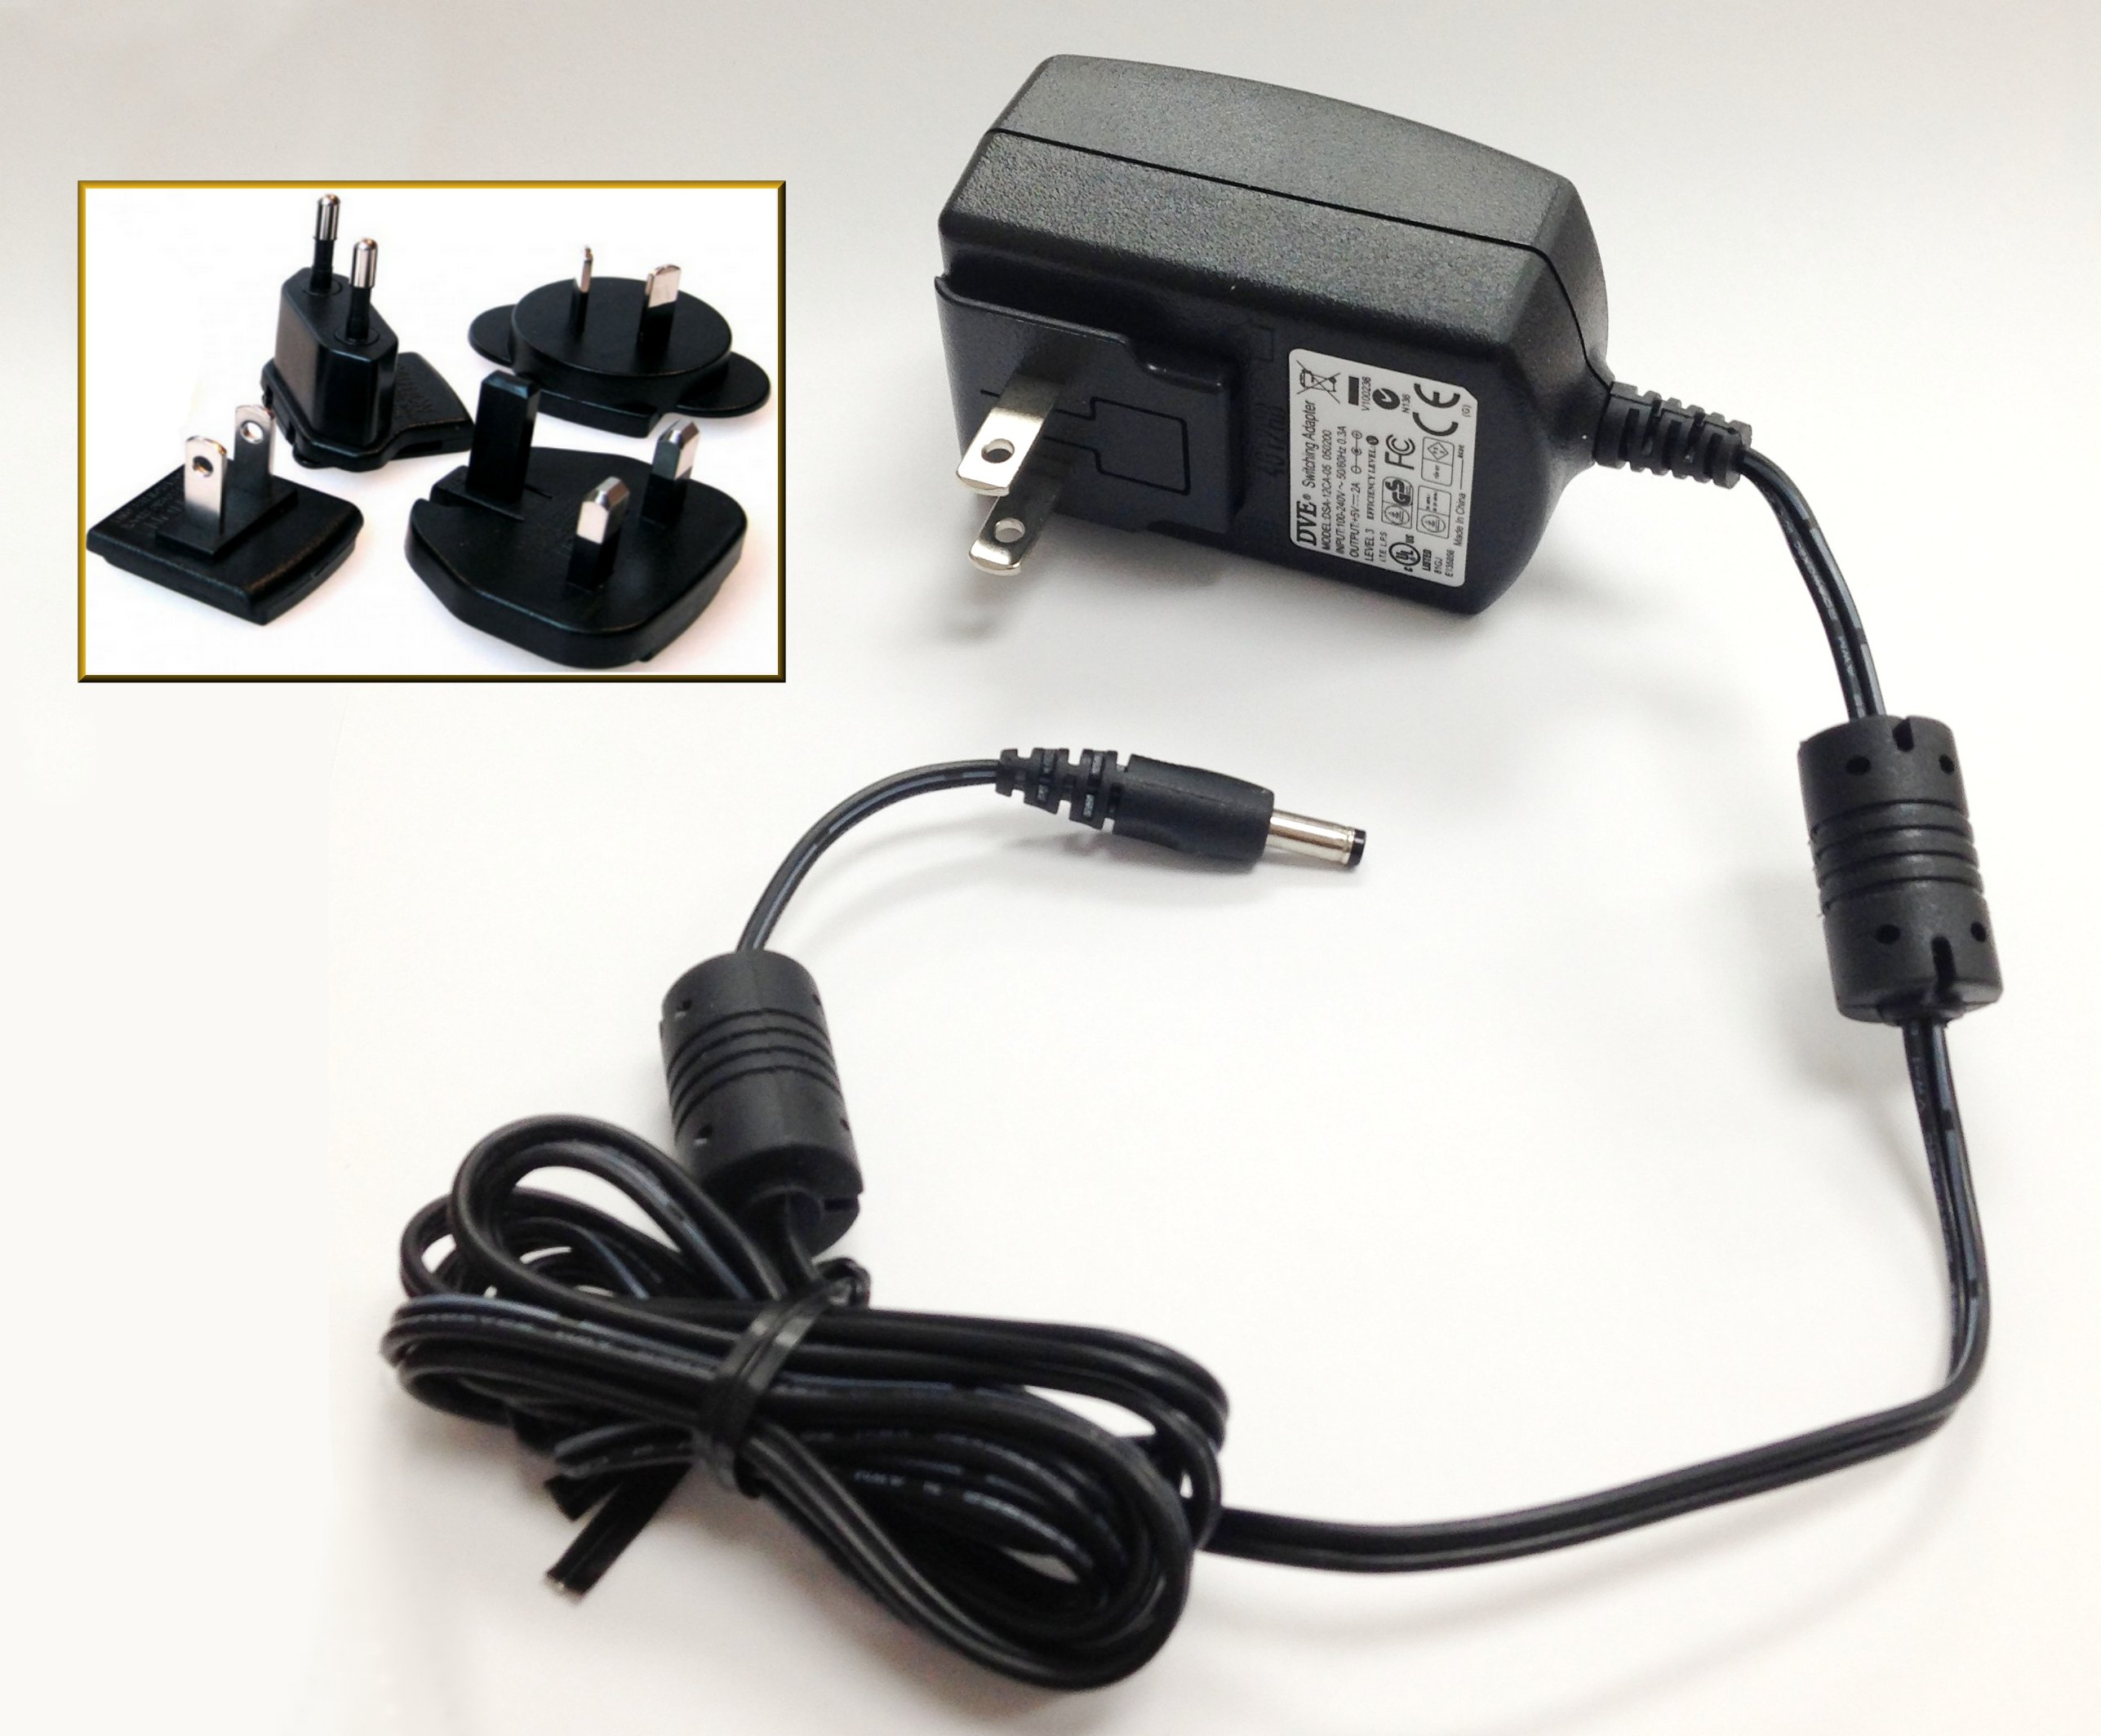 ClearNote+ Power Supply Wall Adapter 100-240V with US Plug